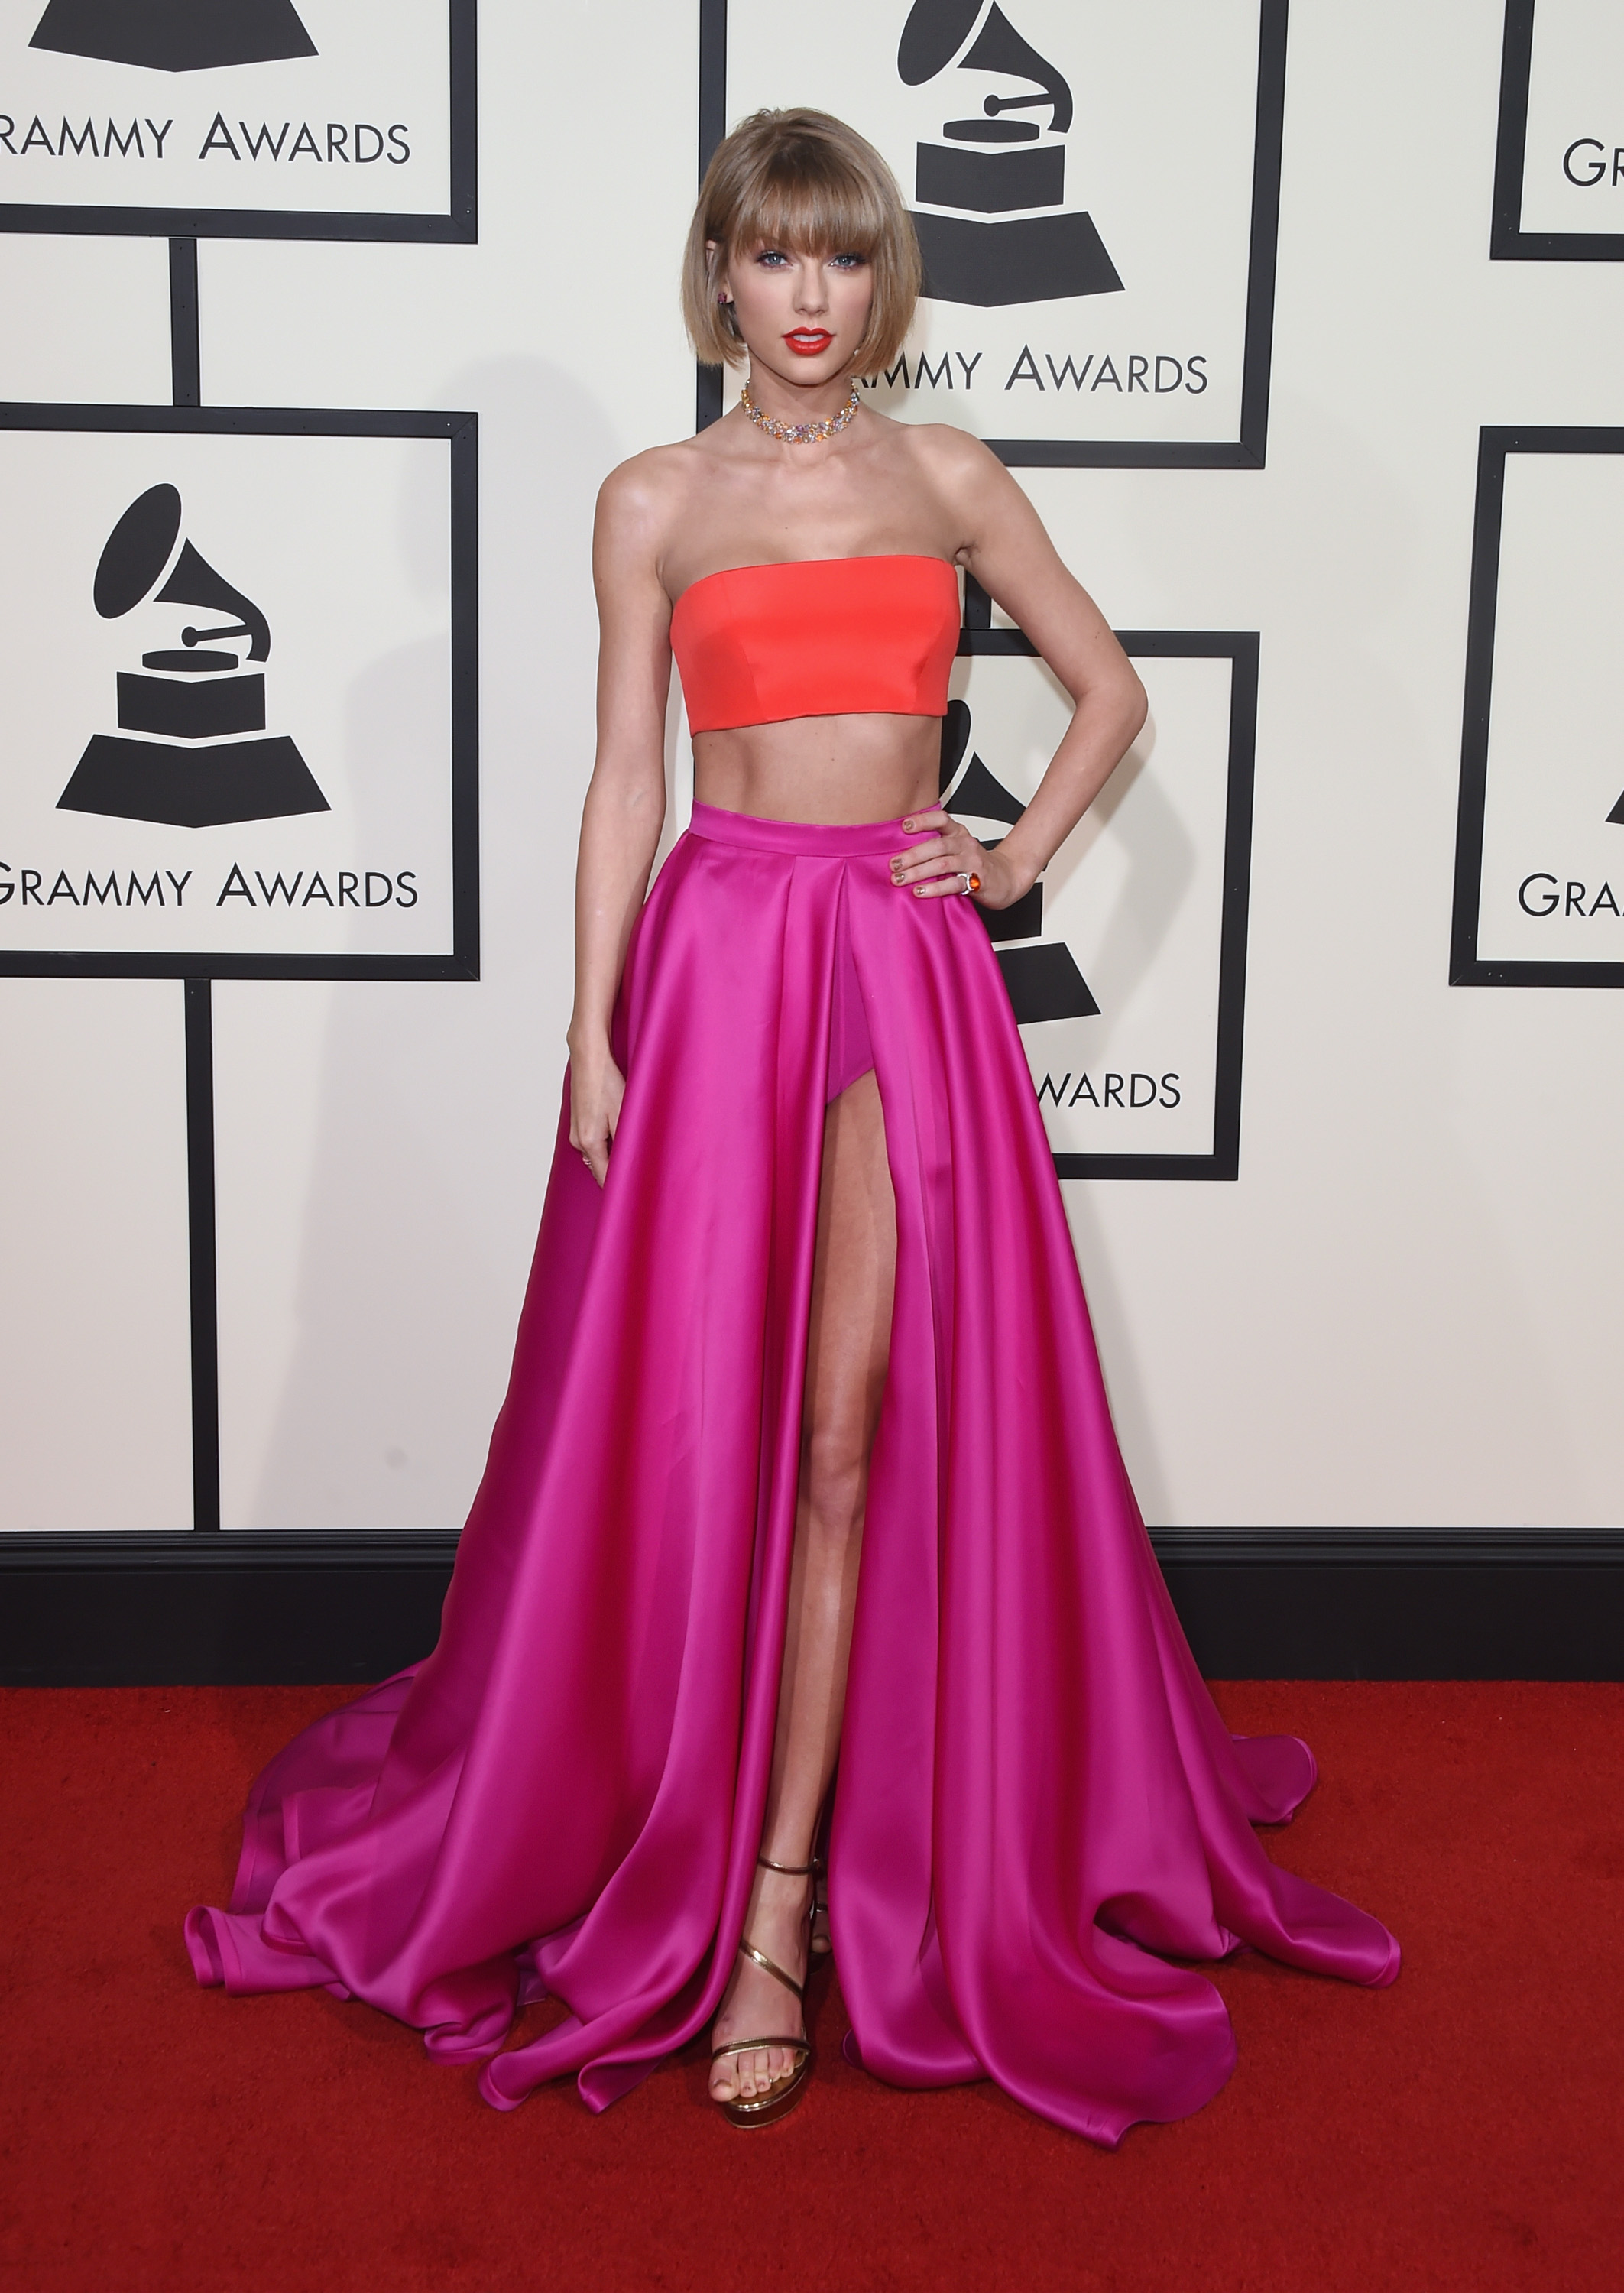 Taylor Swift at the Grammy's